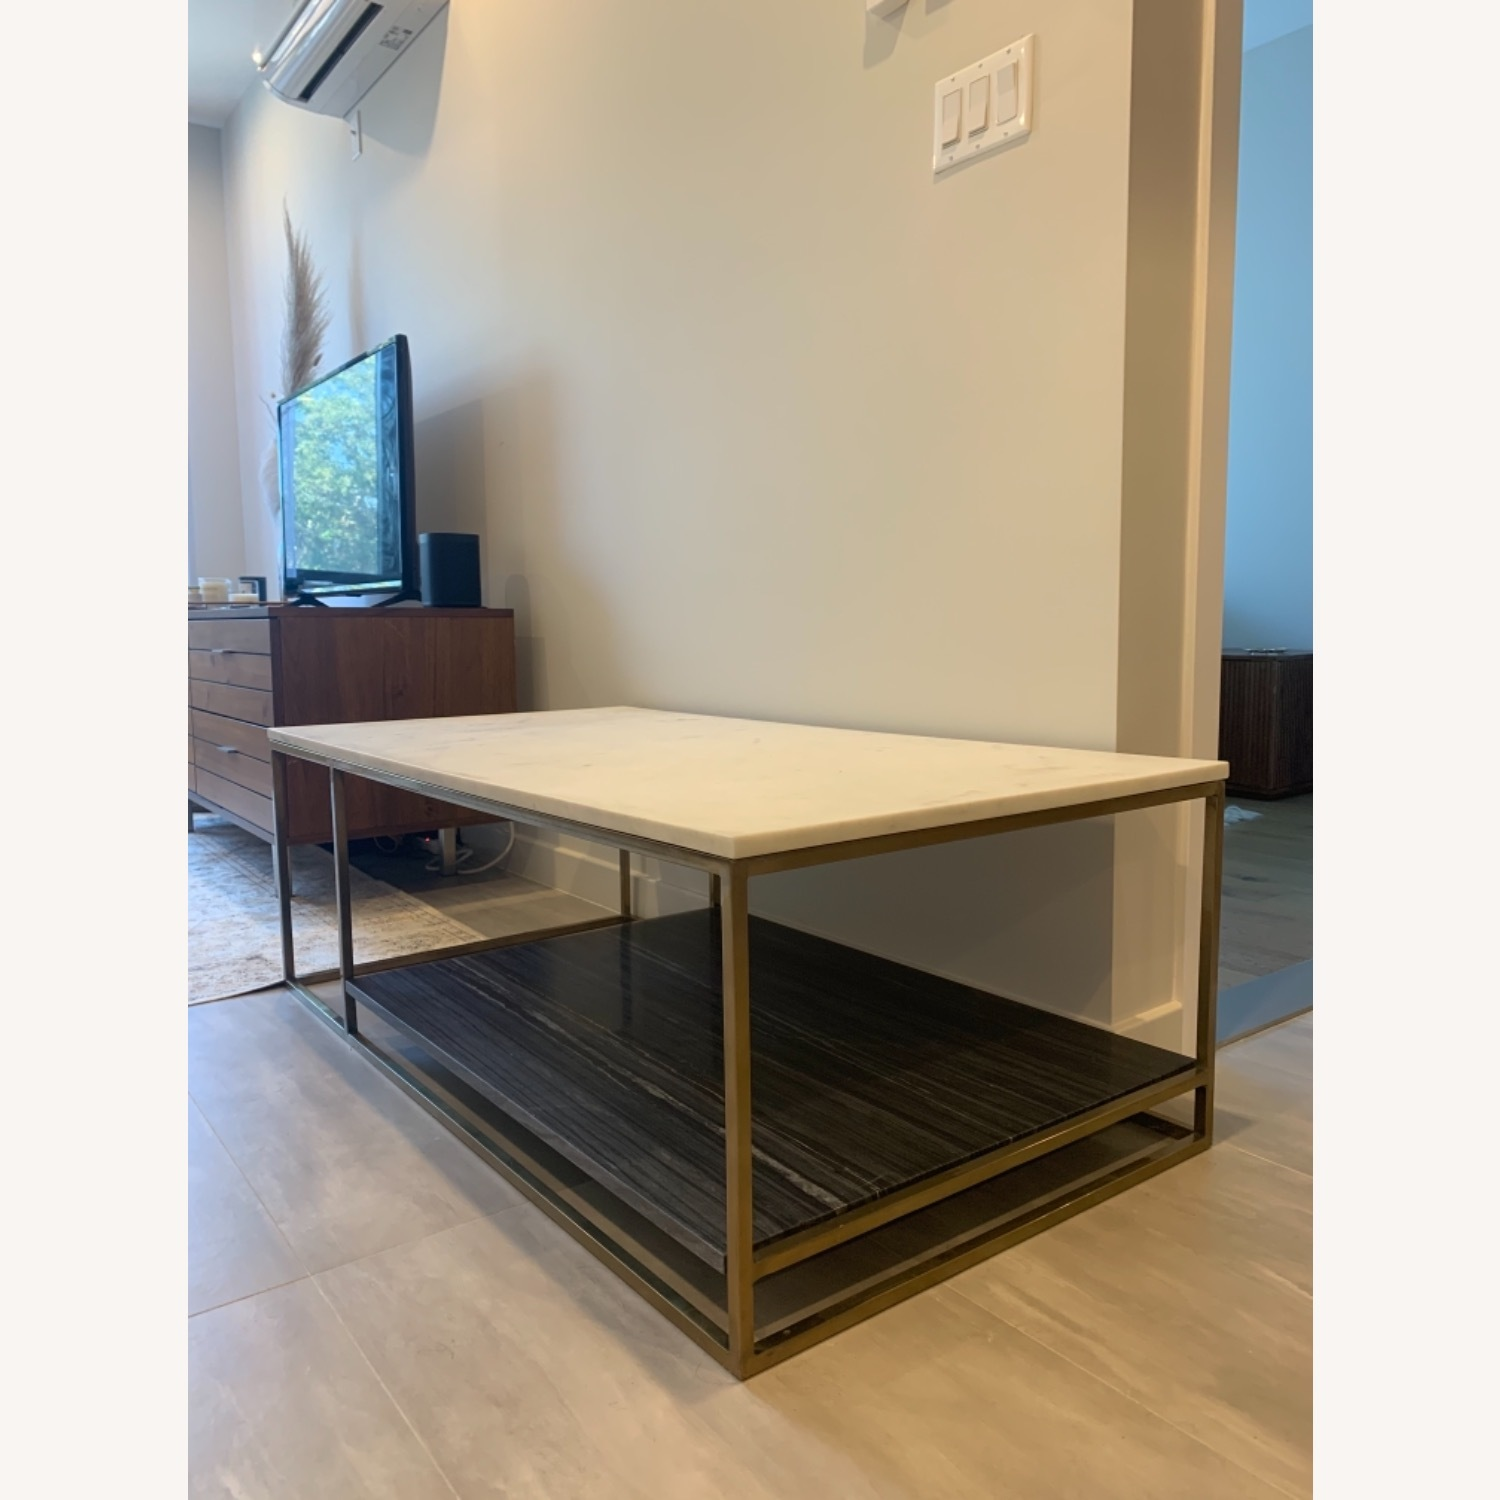 CB2 Grey and White Marble Coffee Table - image-9